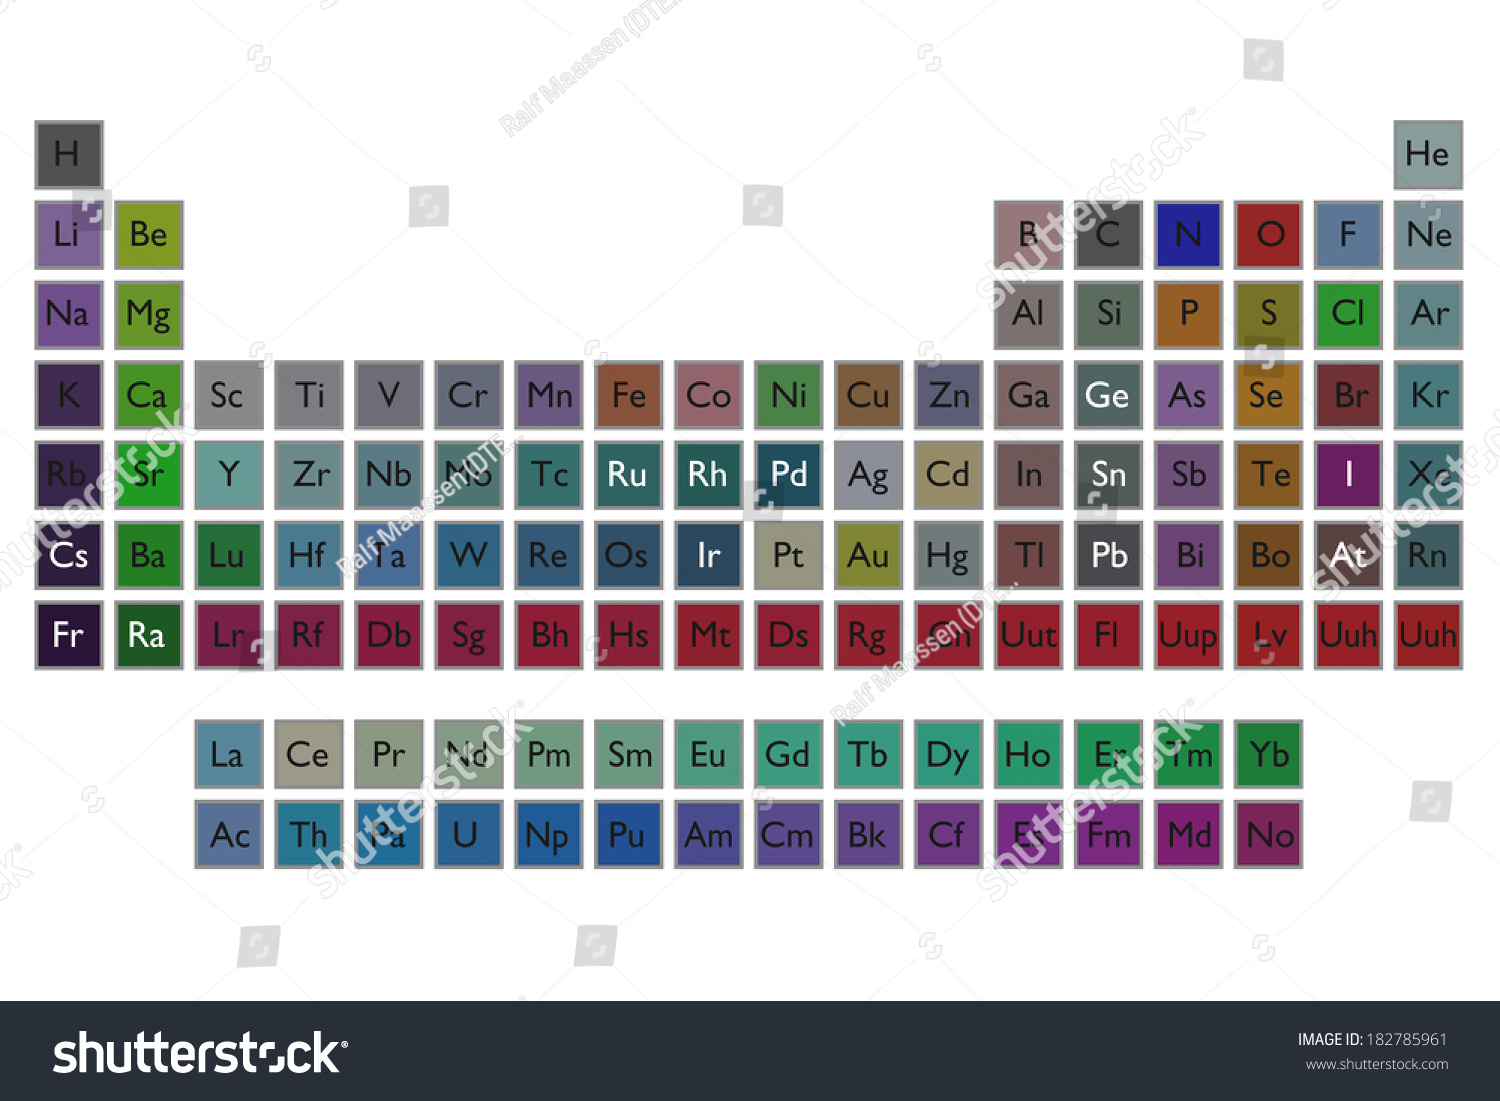 Periodic table elements on white background stock illustration a periodic table of the elements on a white background gamestrikefo Gallery